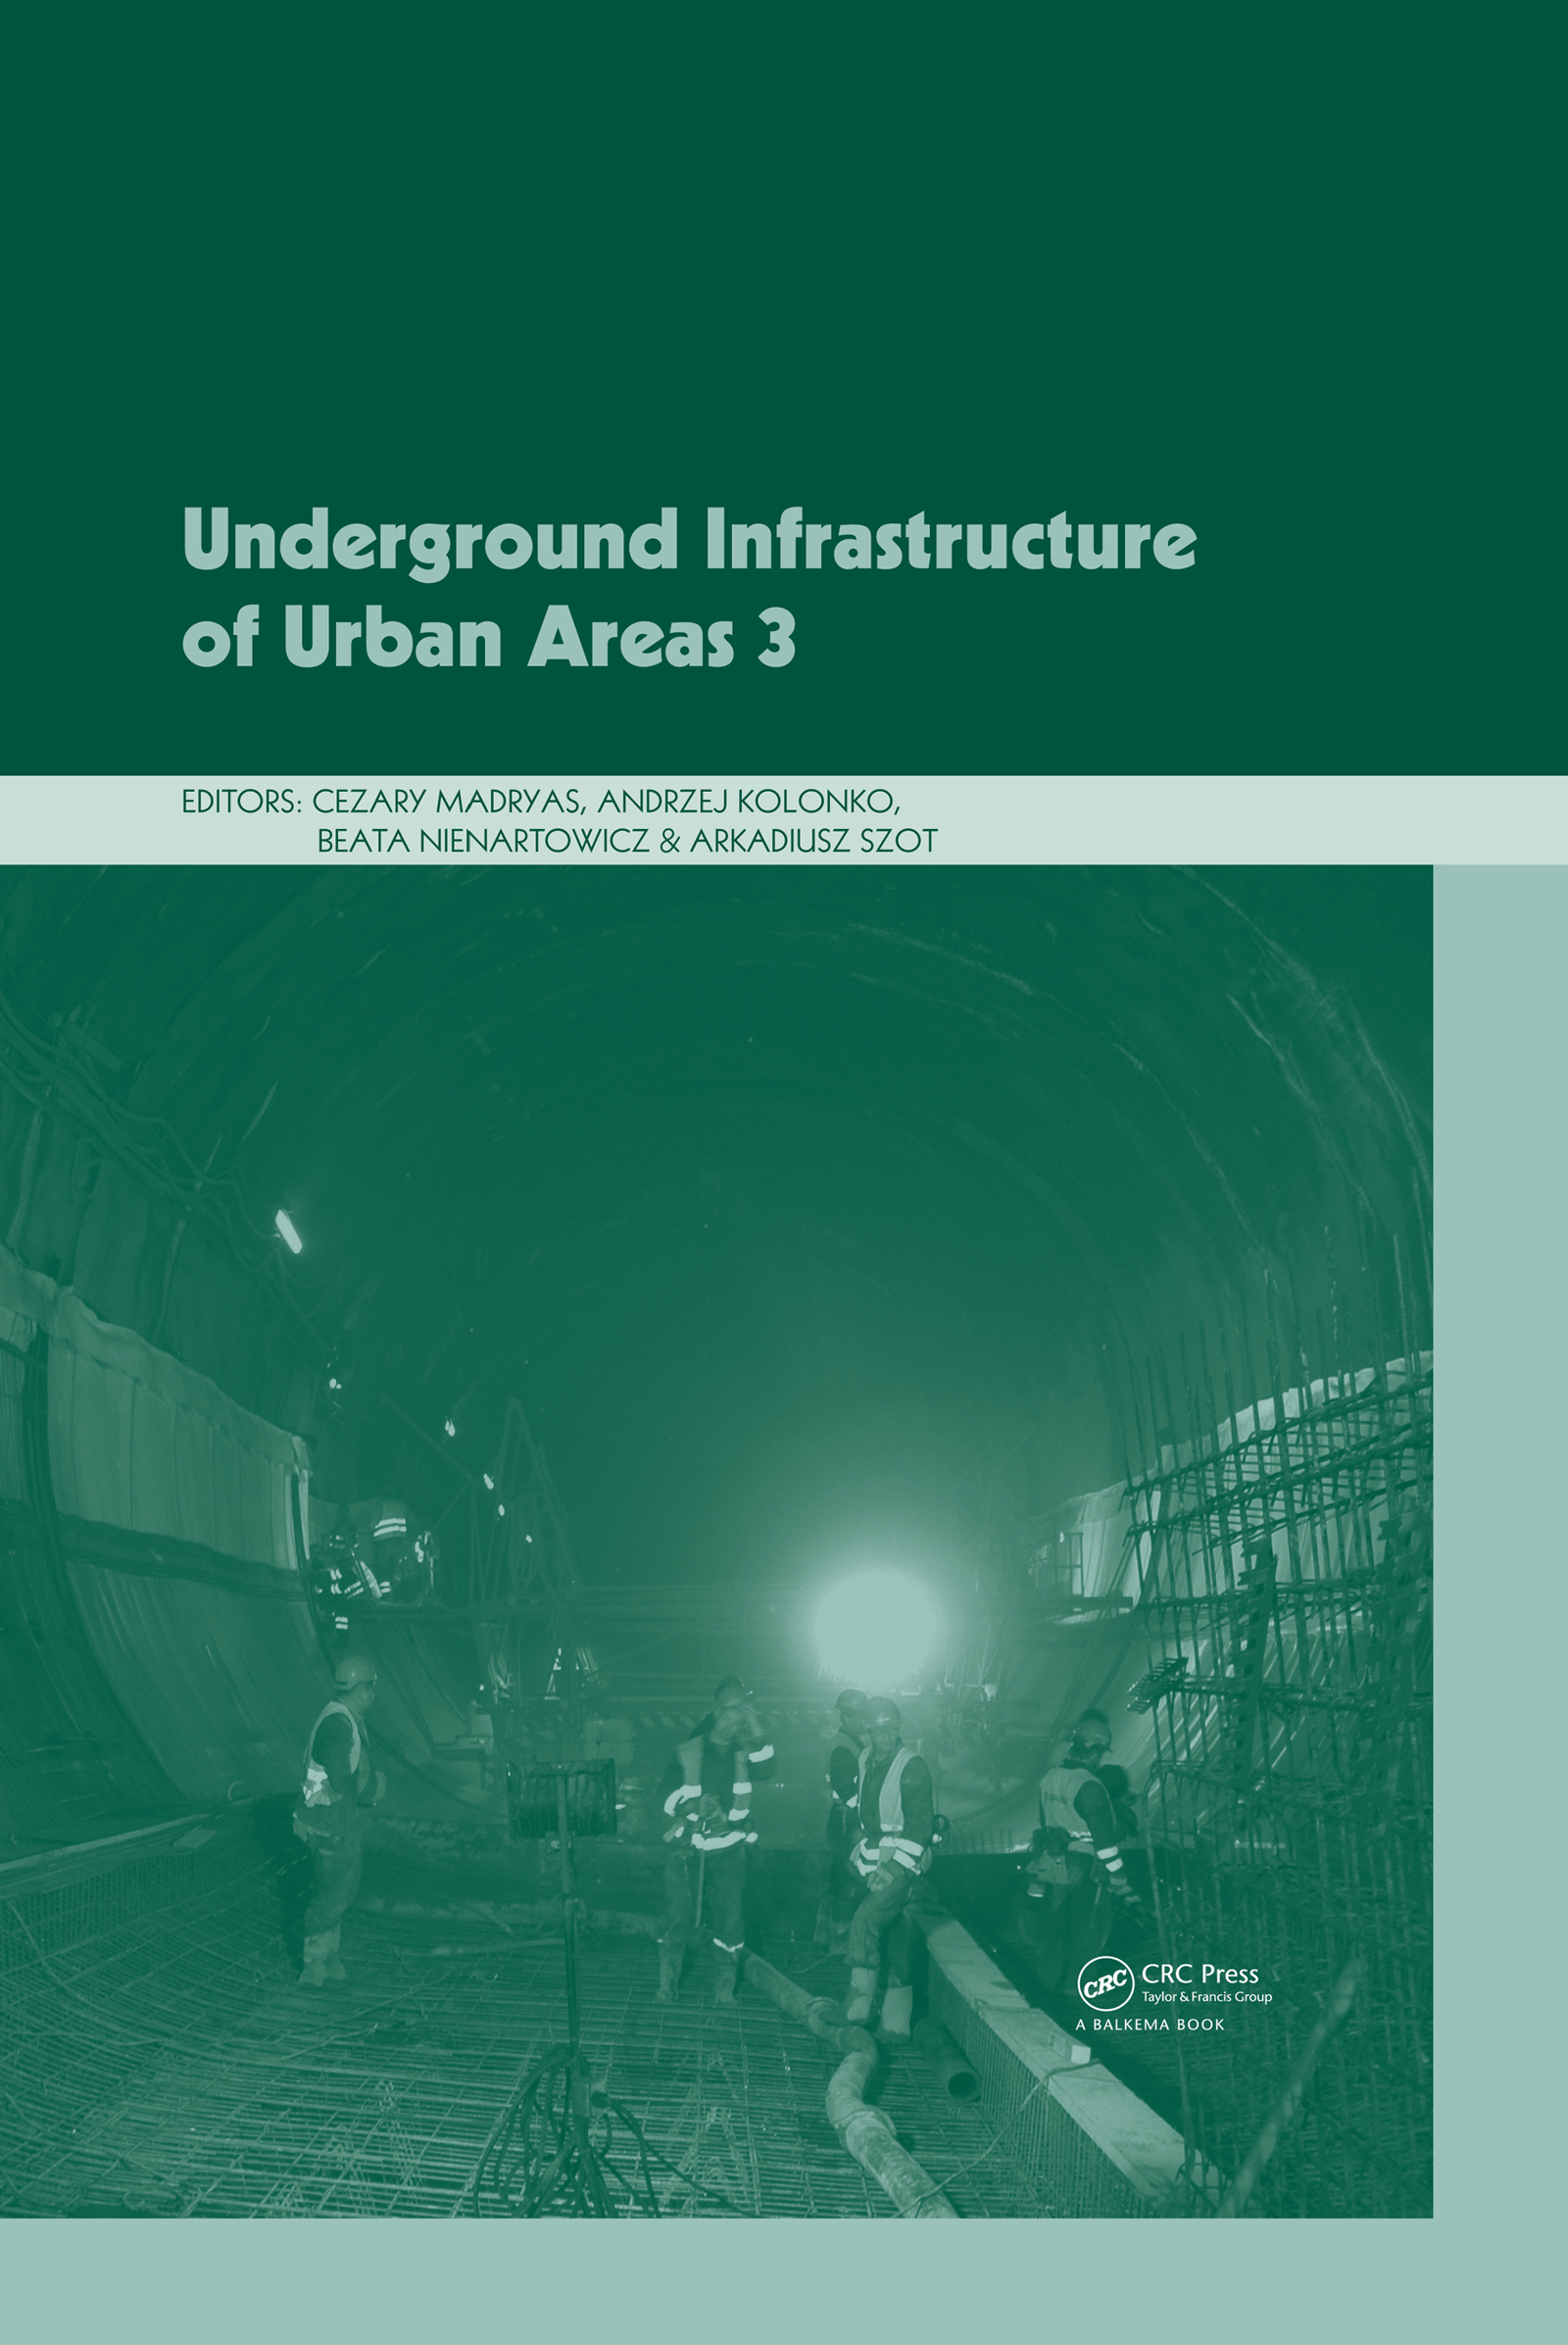 Underground Infrastructure of Urban Areas 3: 1st Edition (Pack - Book and CD) book cover